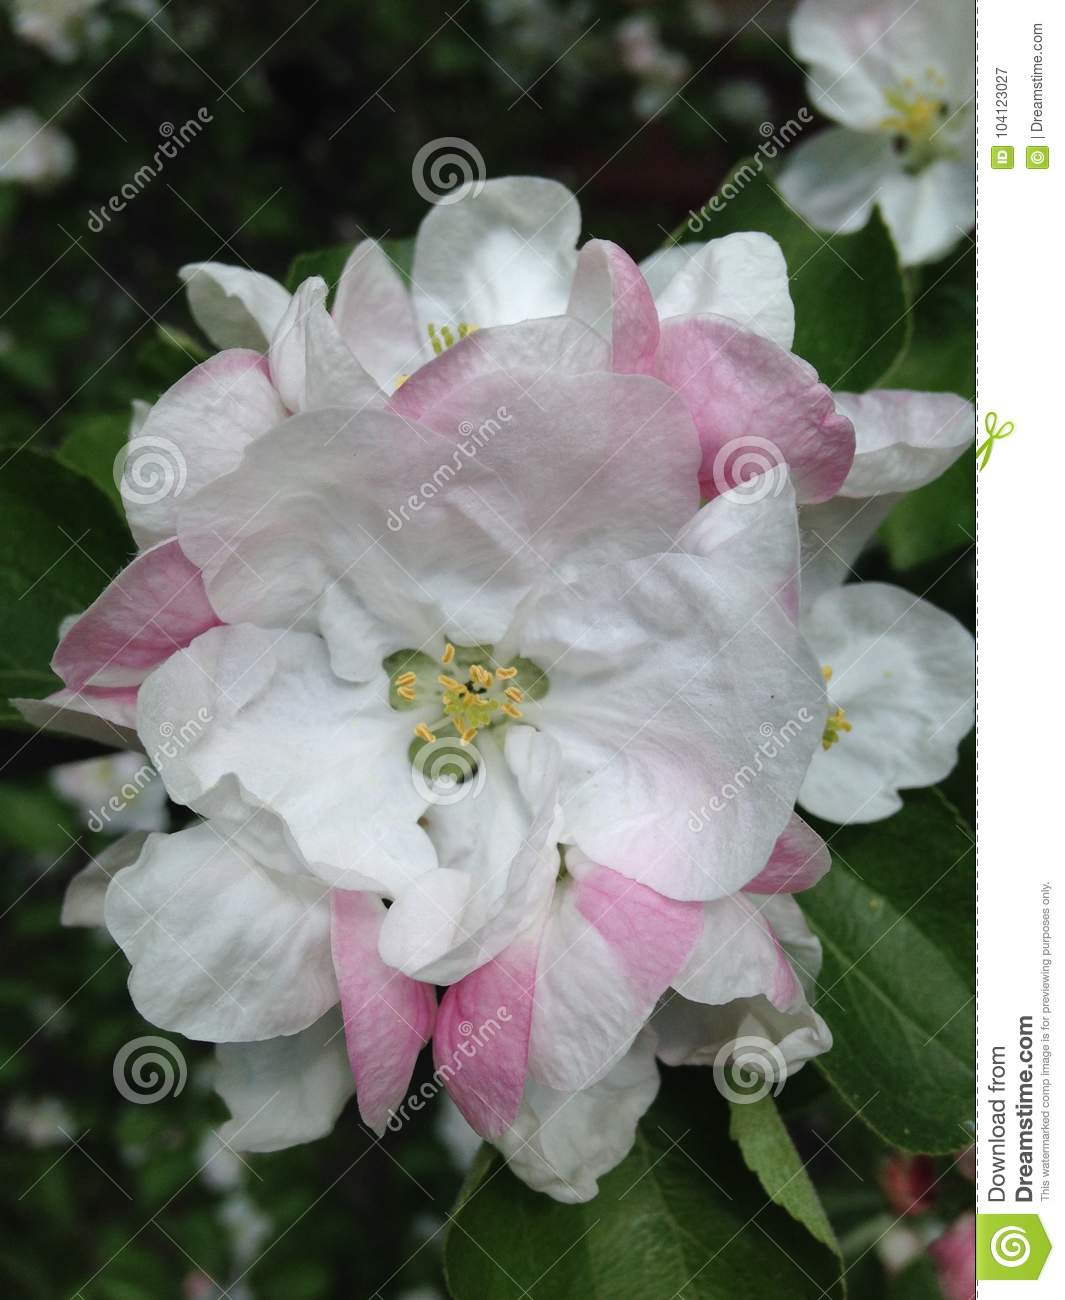 White Pink Flowers On The Bushes Stock Image Image Of Colorful